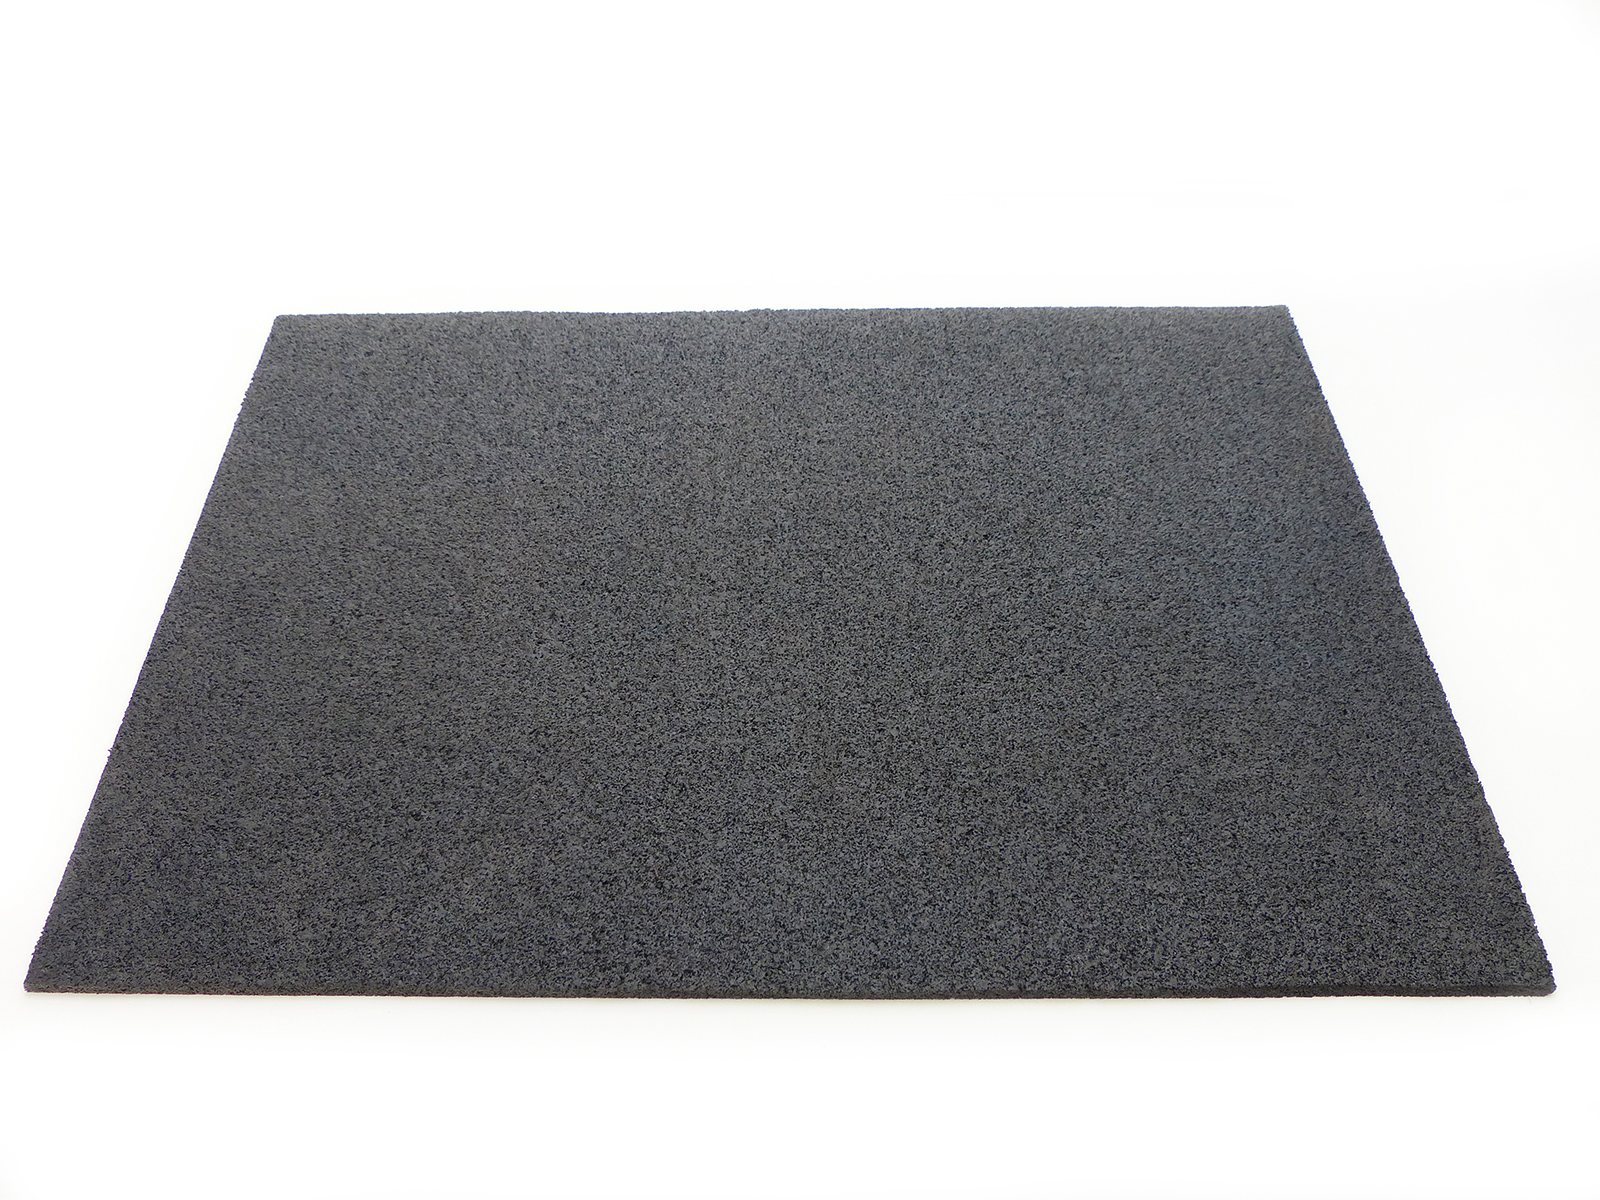 rubber floor mats. Recycled Rubber Floor Mat Mats N